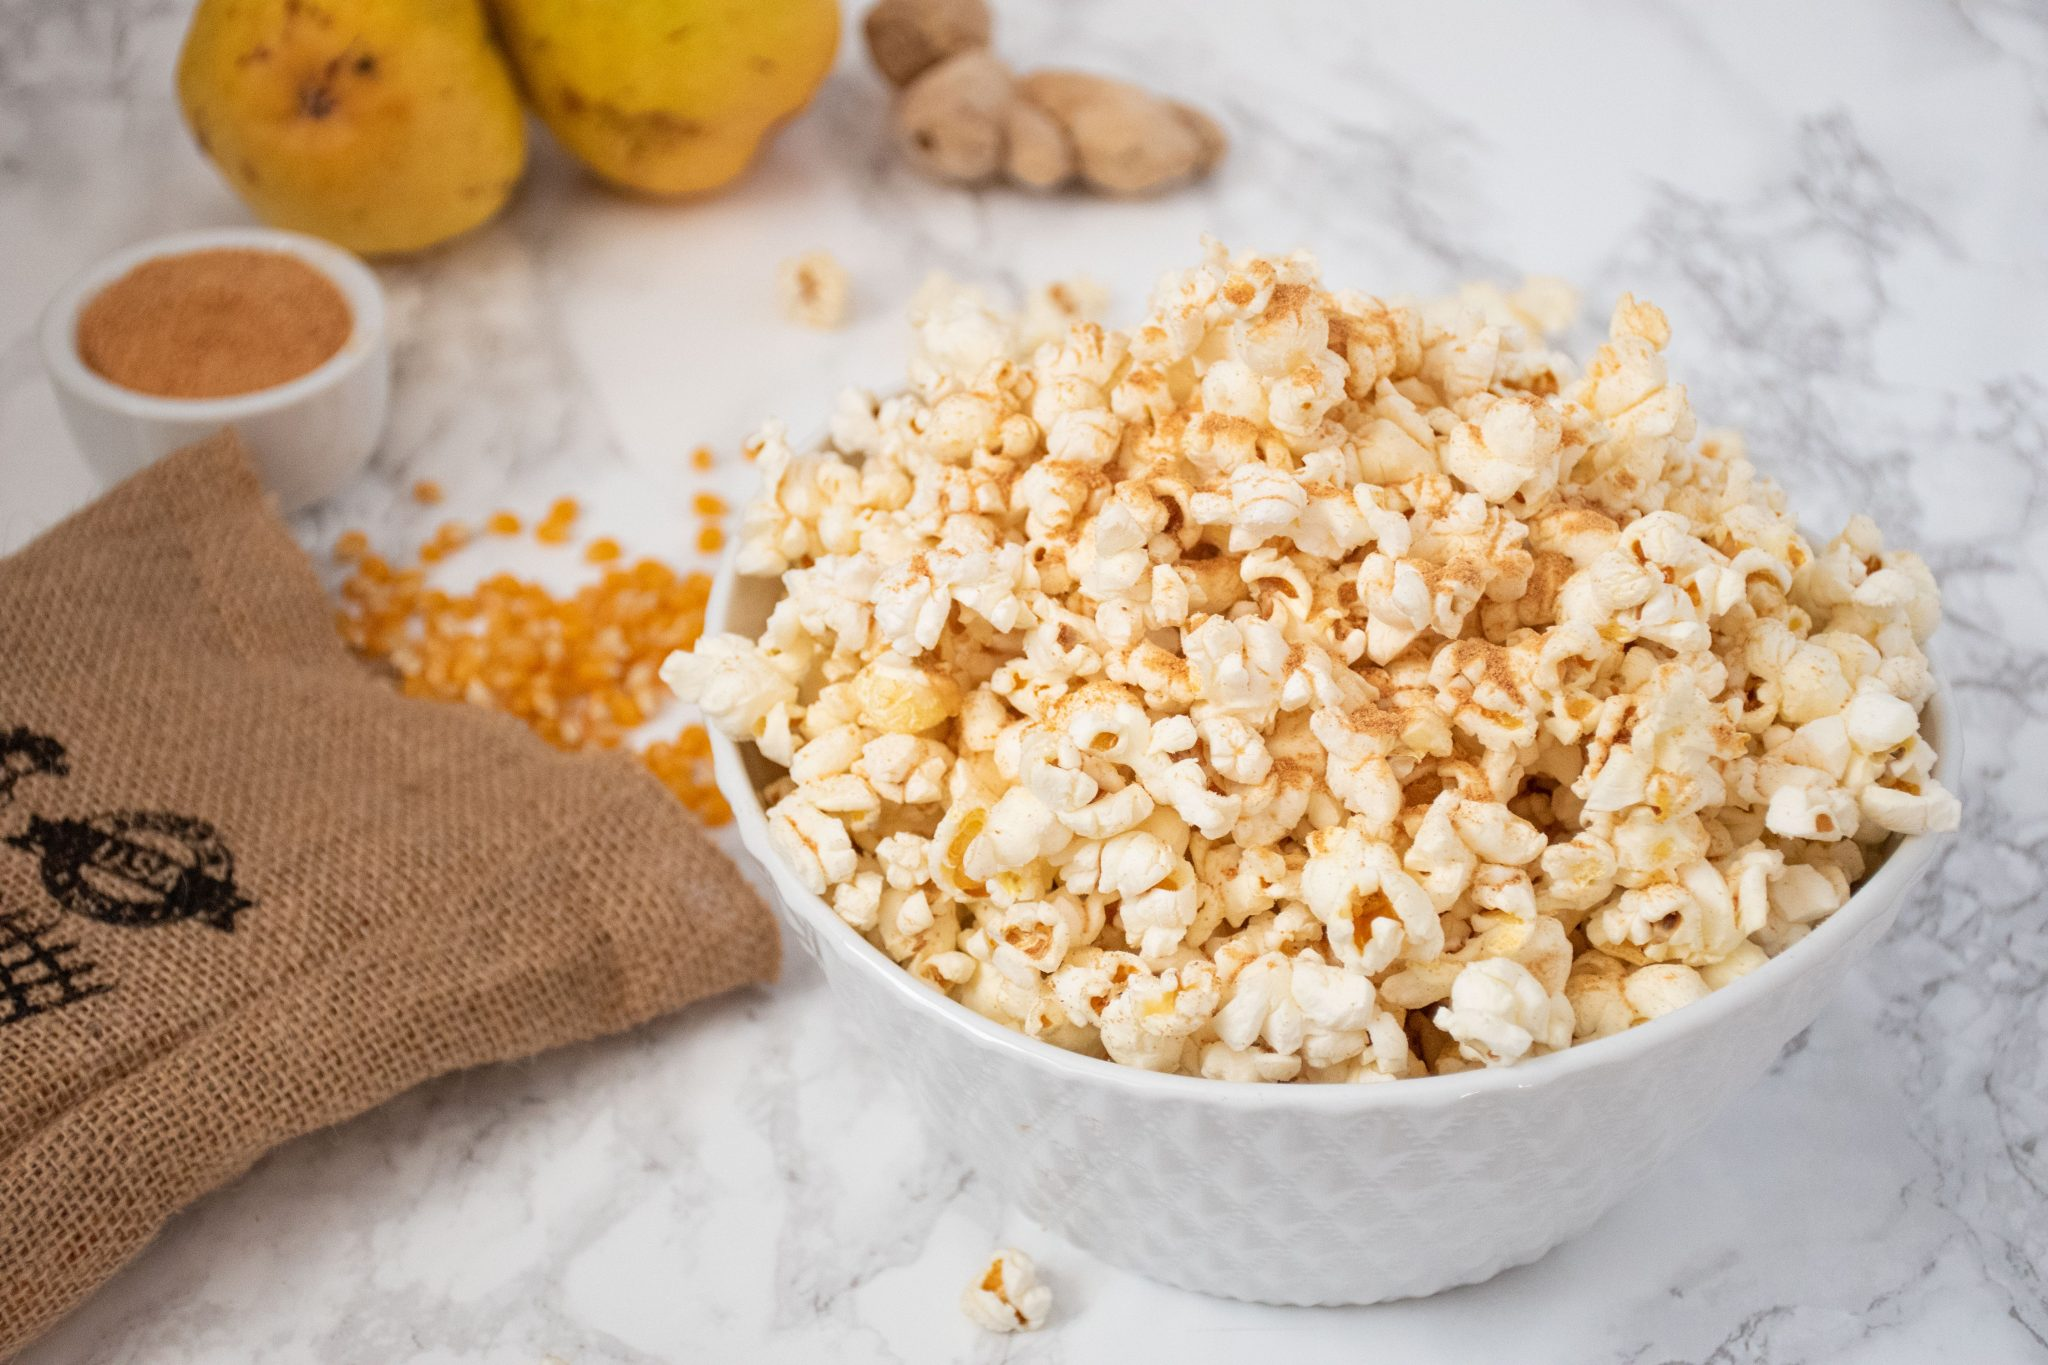 Gingered Pear Seasoned Popcorn in a bowl